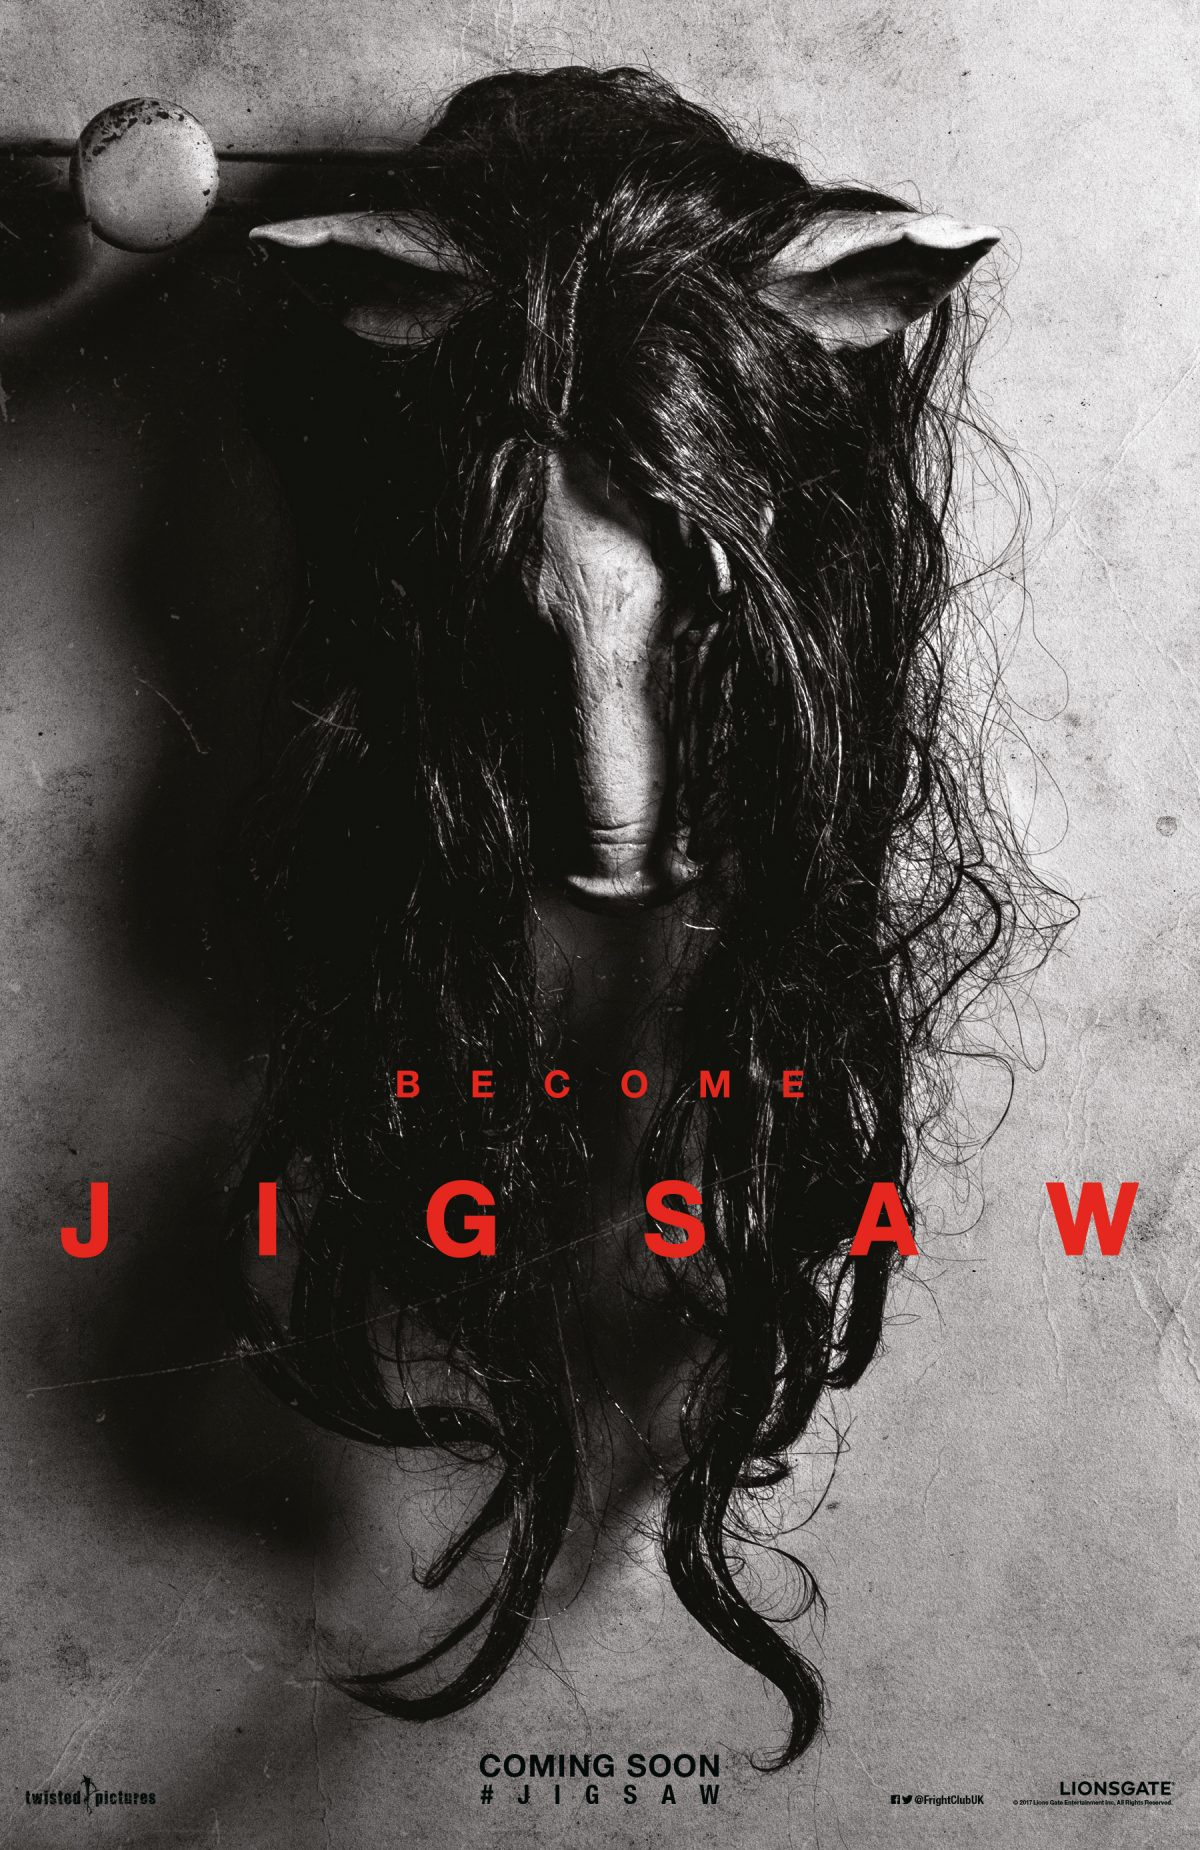 It's one of the highest grossing horror franchises of all time and the movie with some of the craziest and bloodiest contraptions created by John Kramer aka Jigsaw is heading to Blu-ray on the 26th February, we checked out the home release of the latest movie in the Saw franchise.